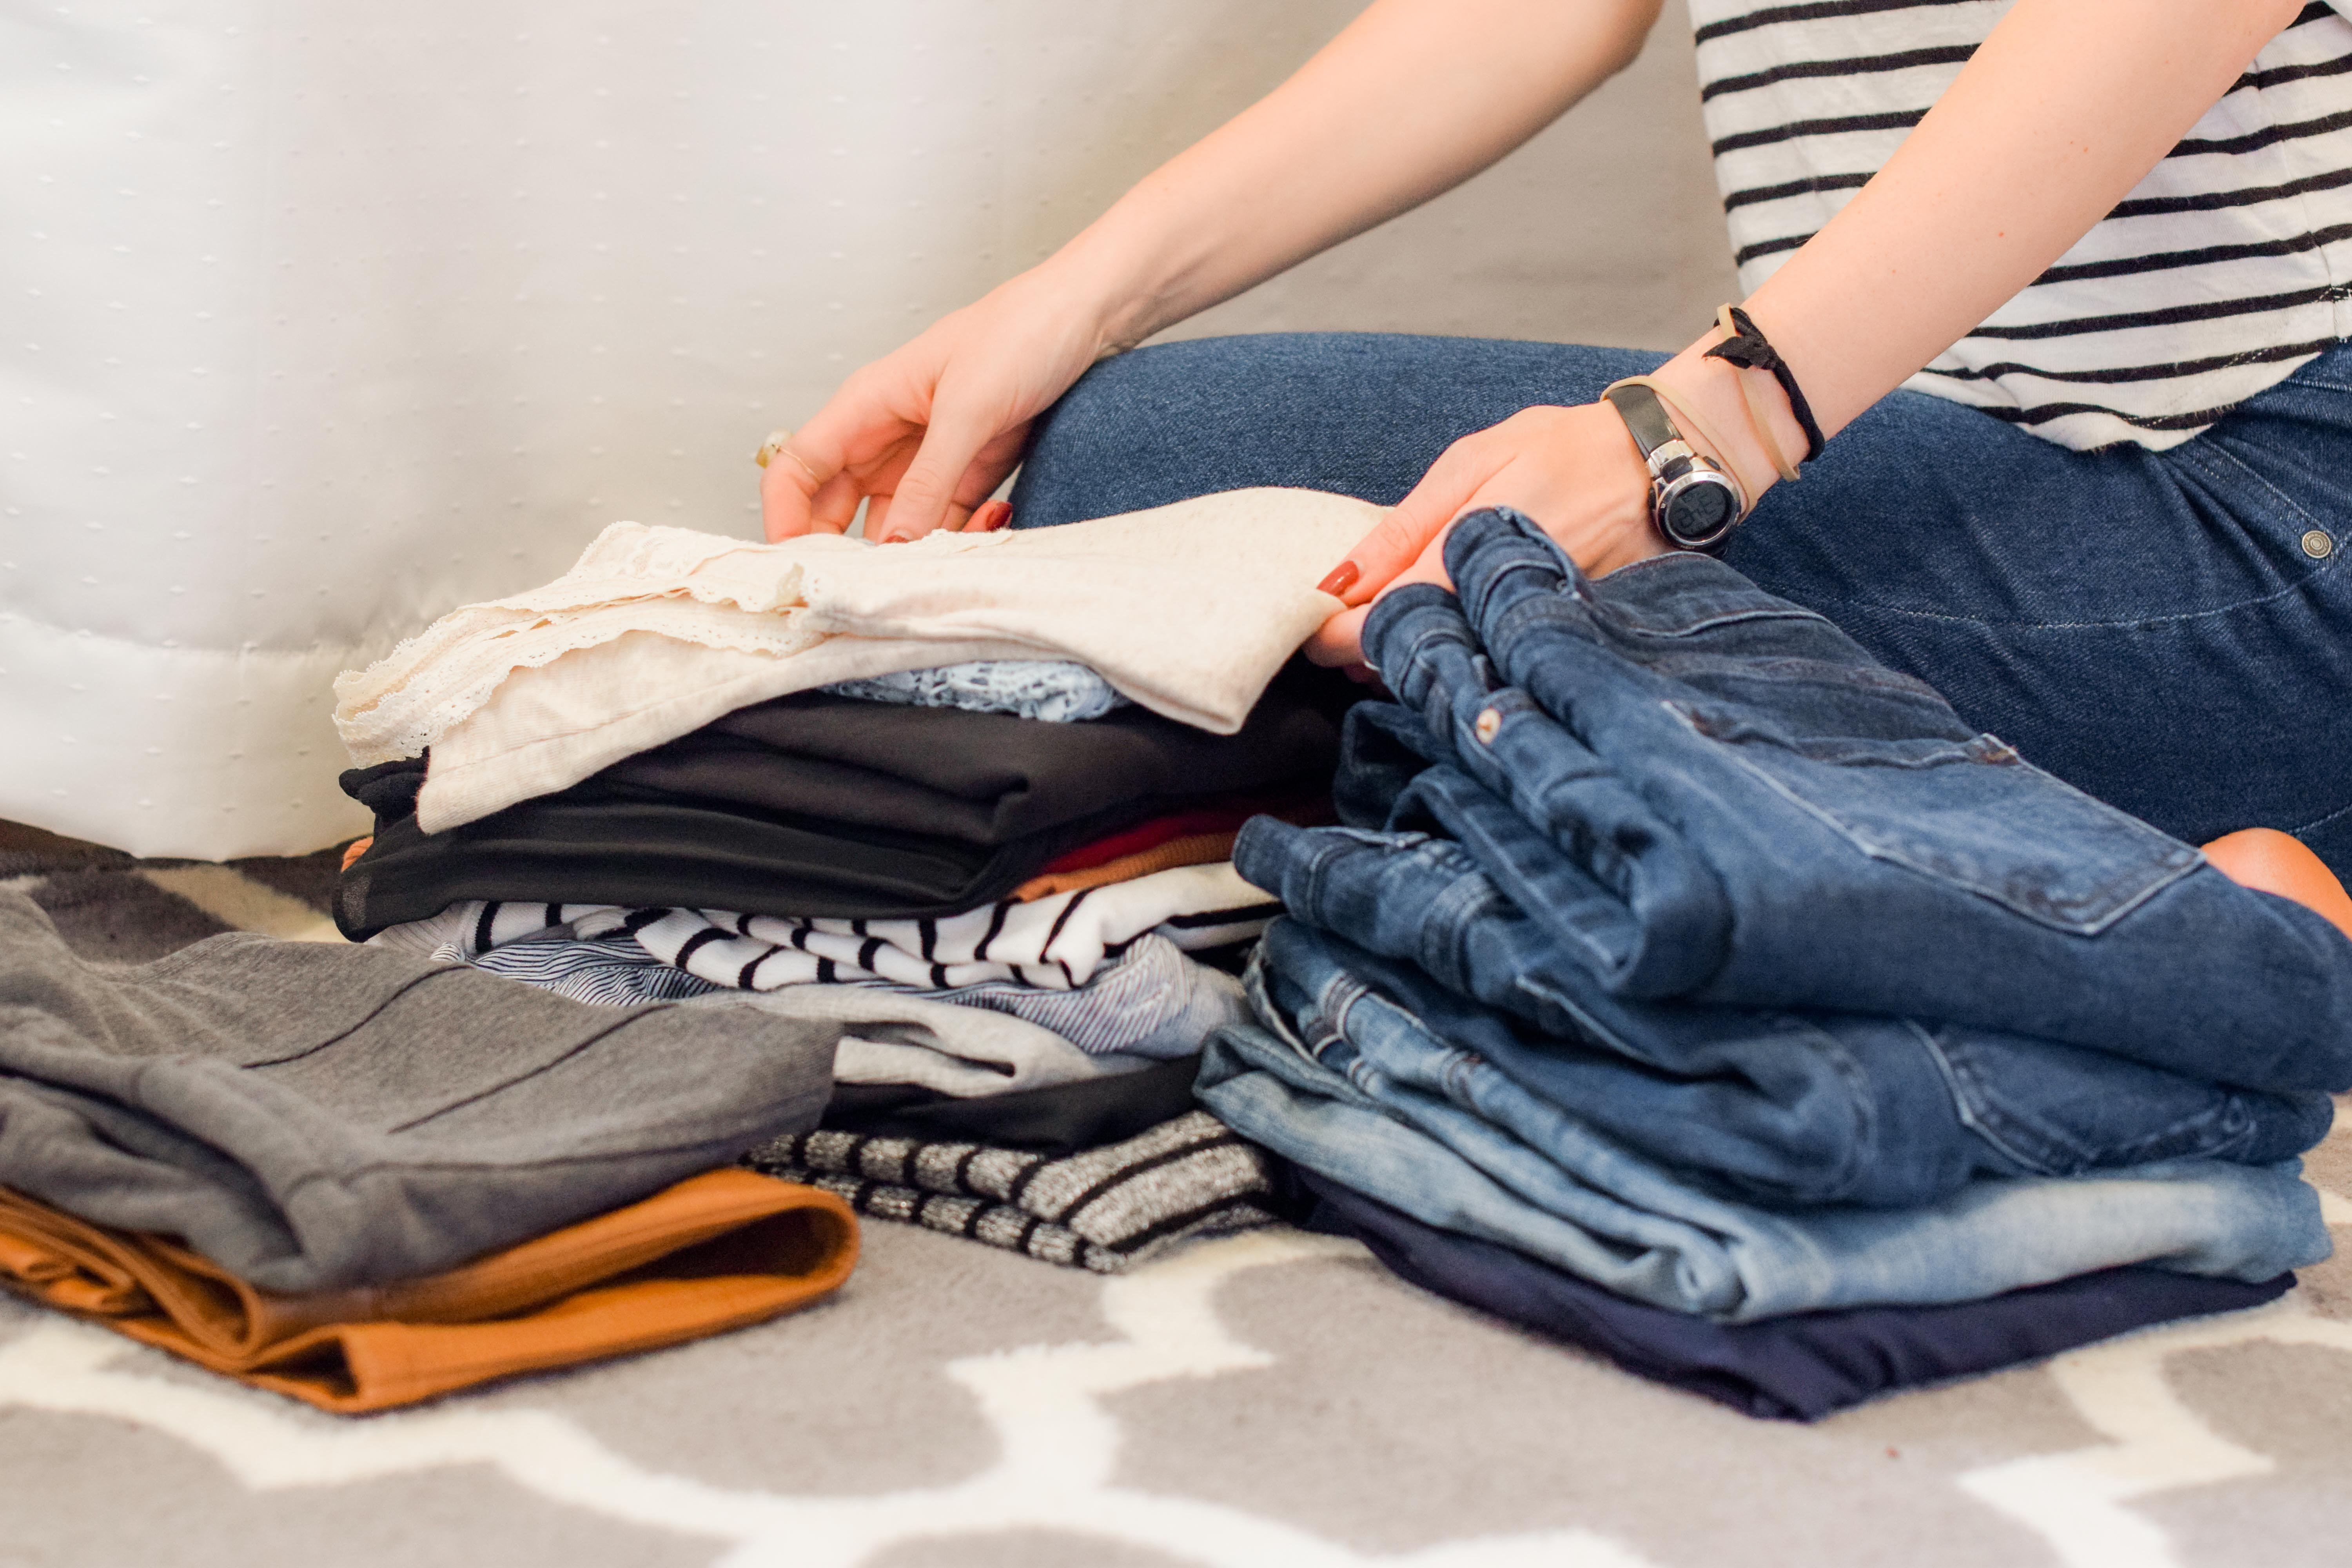 Simple Laundry Hacks That Will Make Your Life Easier